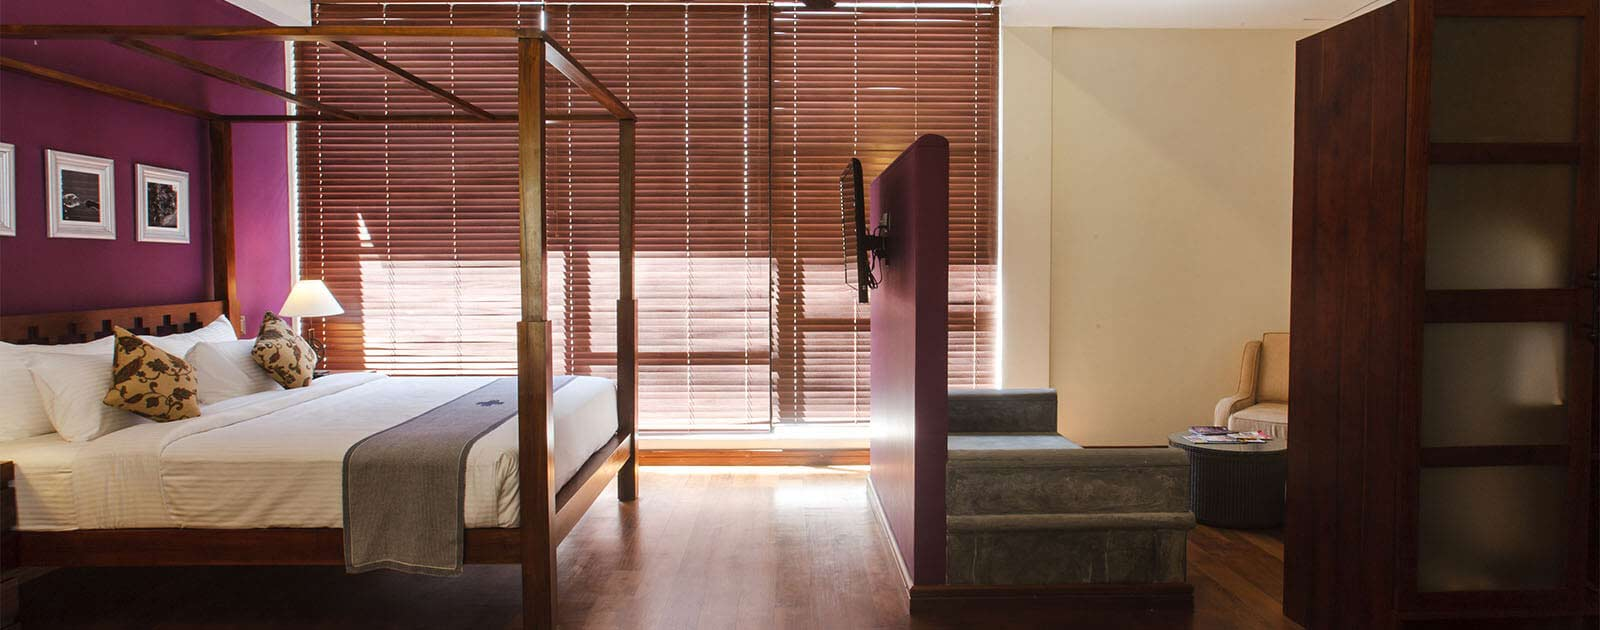 Suites in Colombo Courtyard Hotel